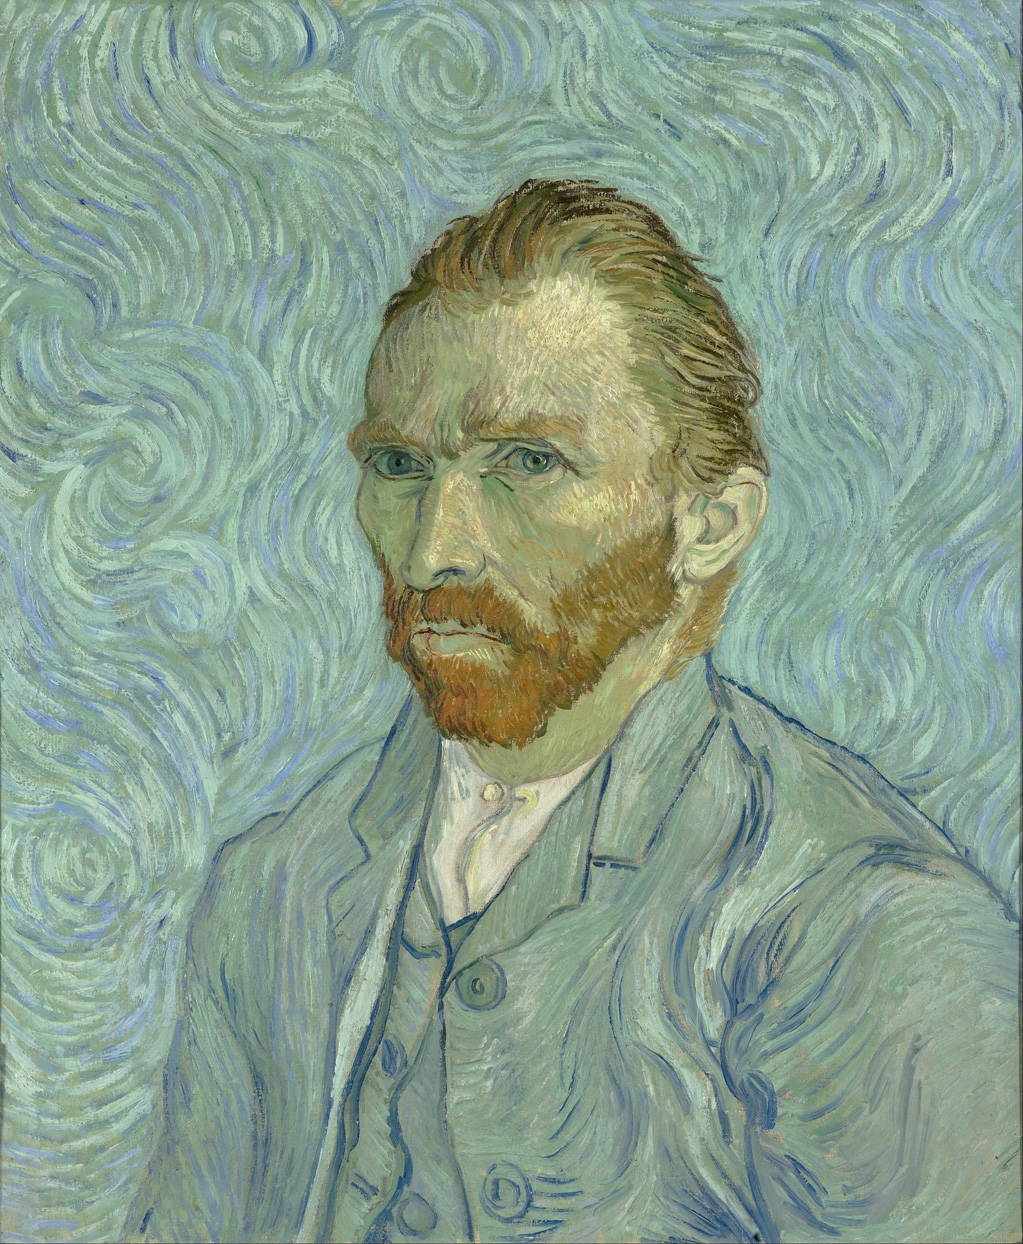 Van Gogh self-portrait (1889)